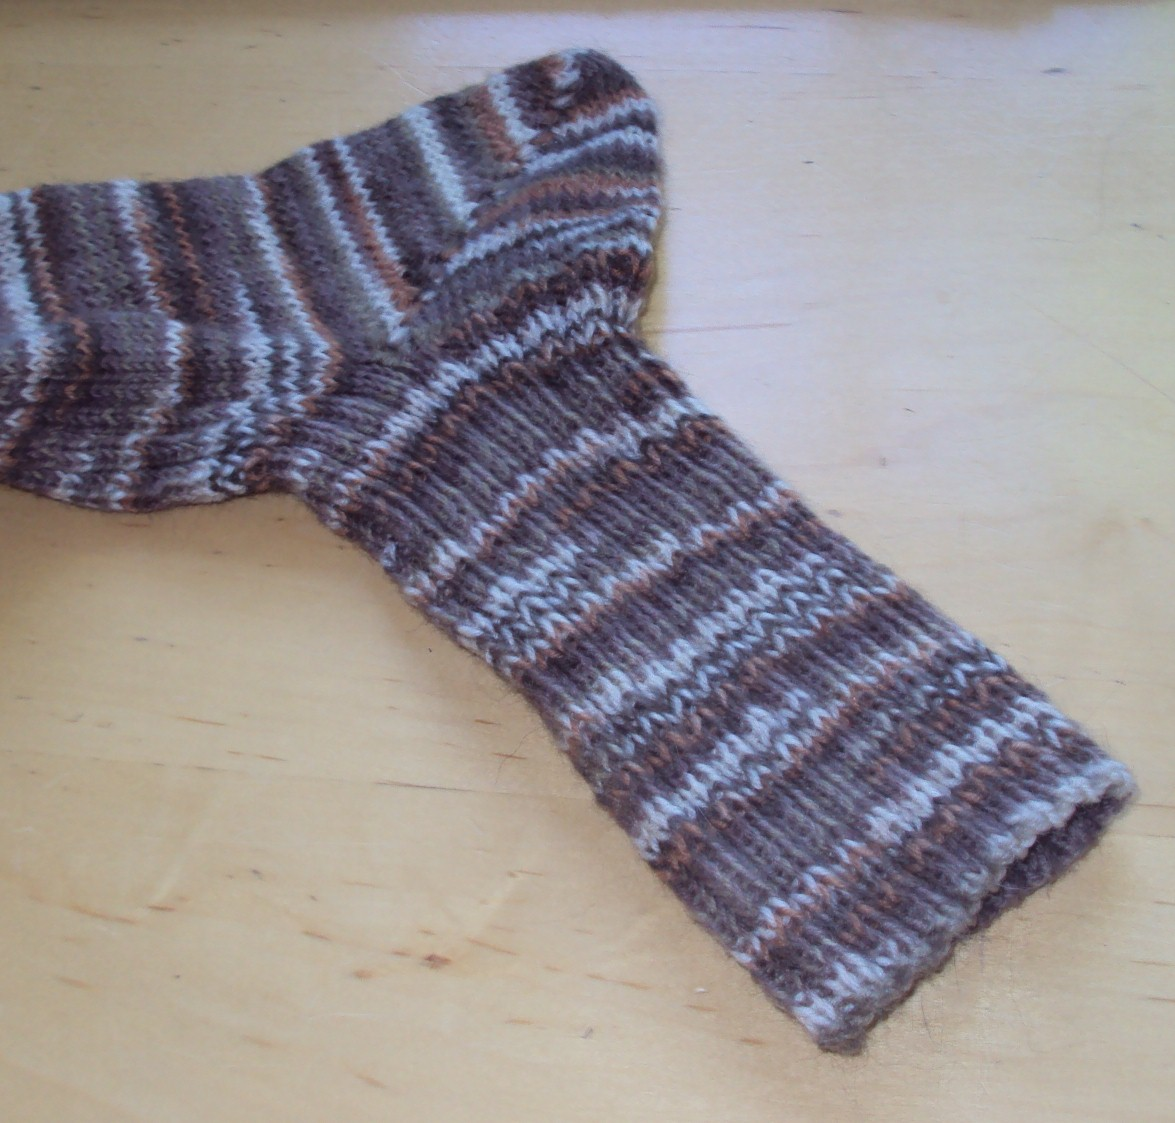 Crafts are my passion, Cats are my obsession: FREE SOCK PATTERN!!!!